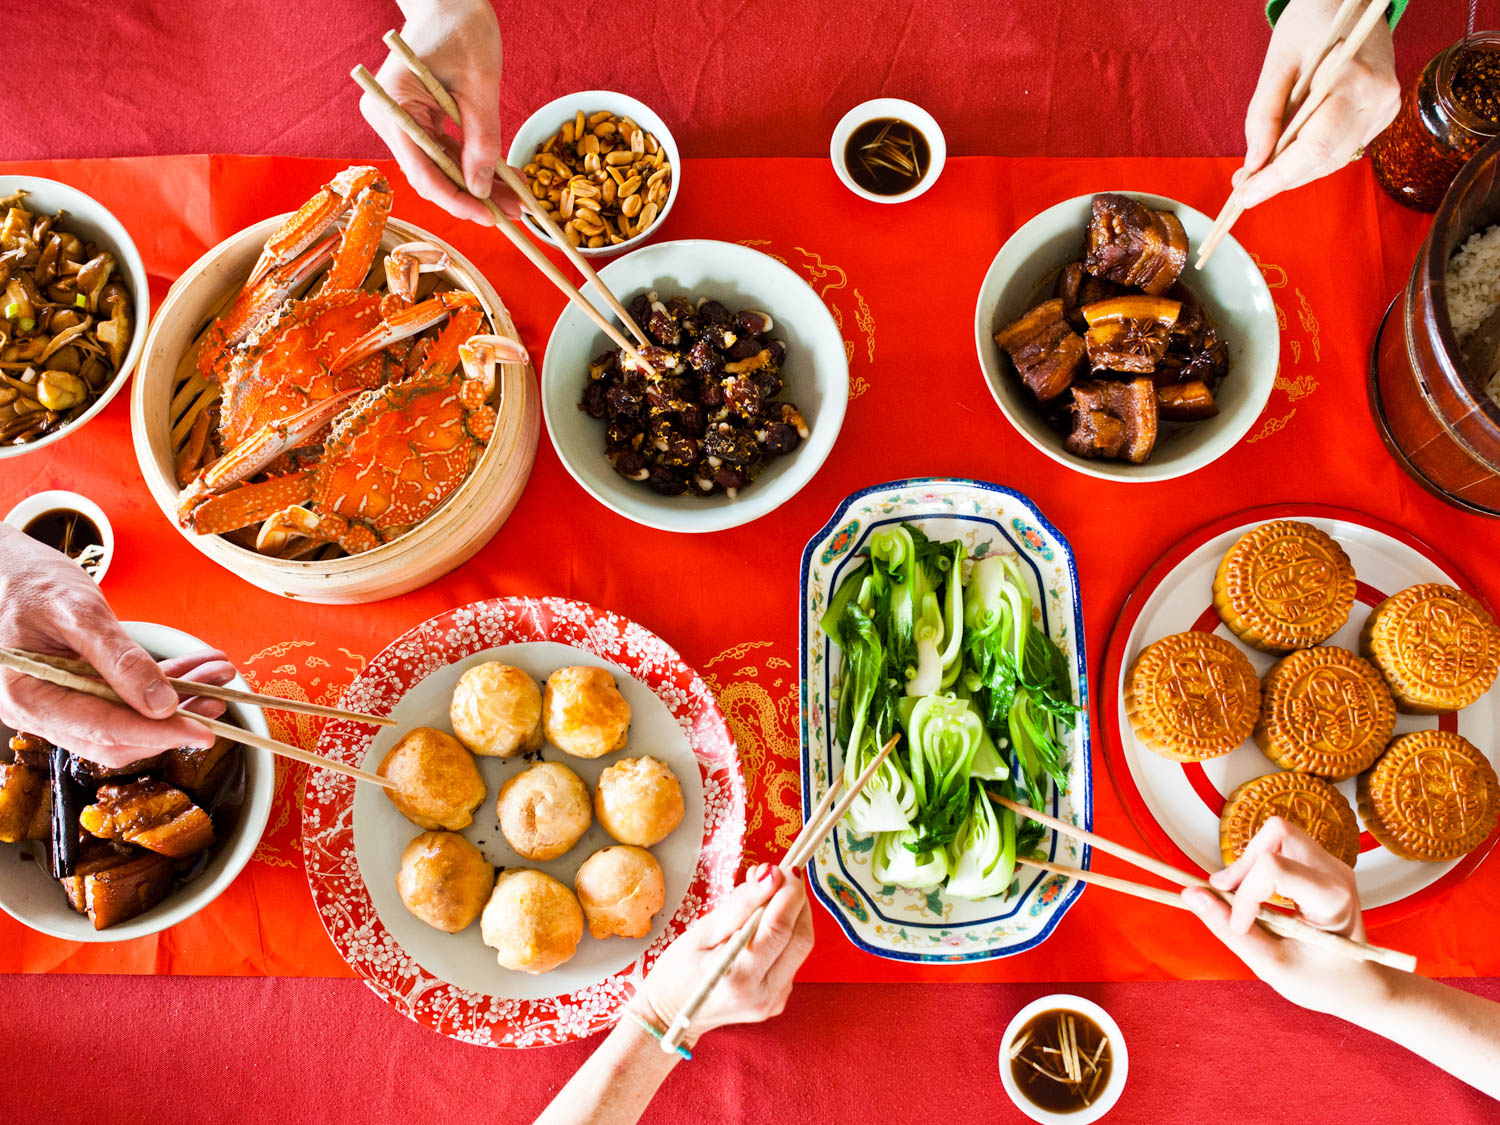 feast for chinese moon festival